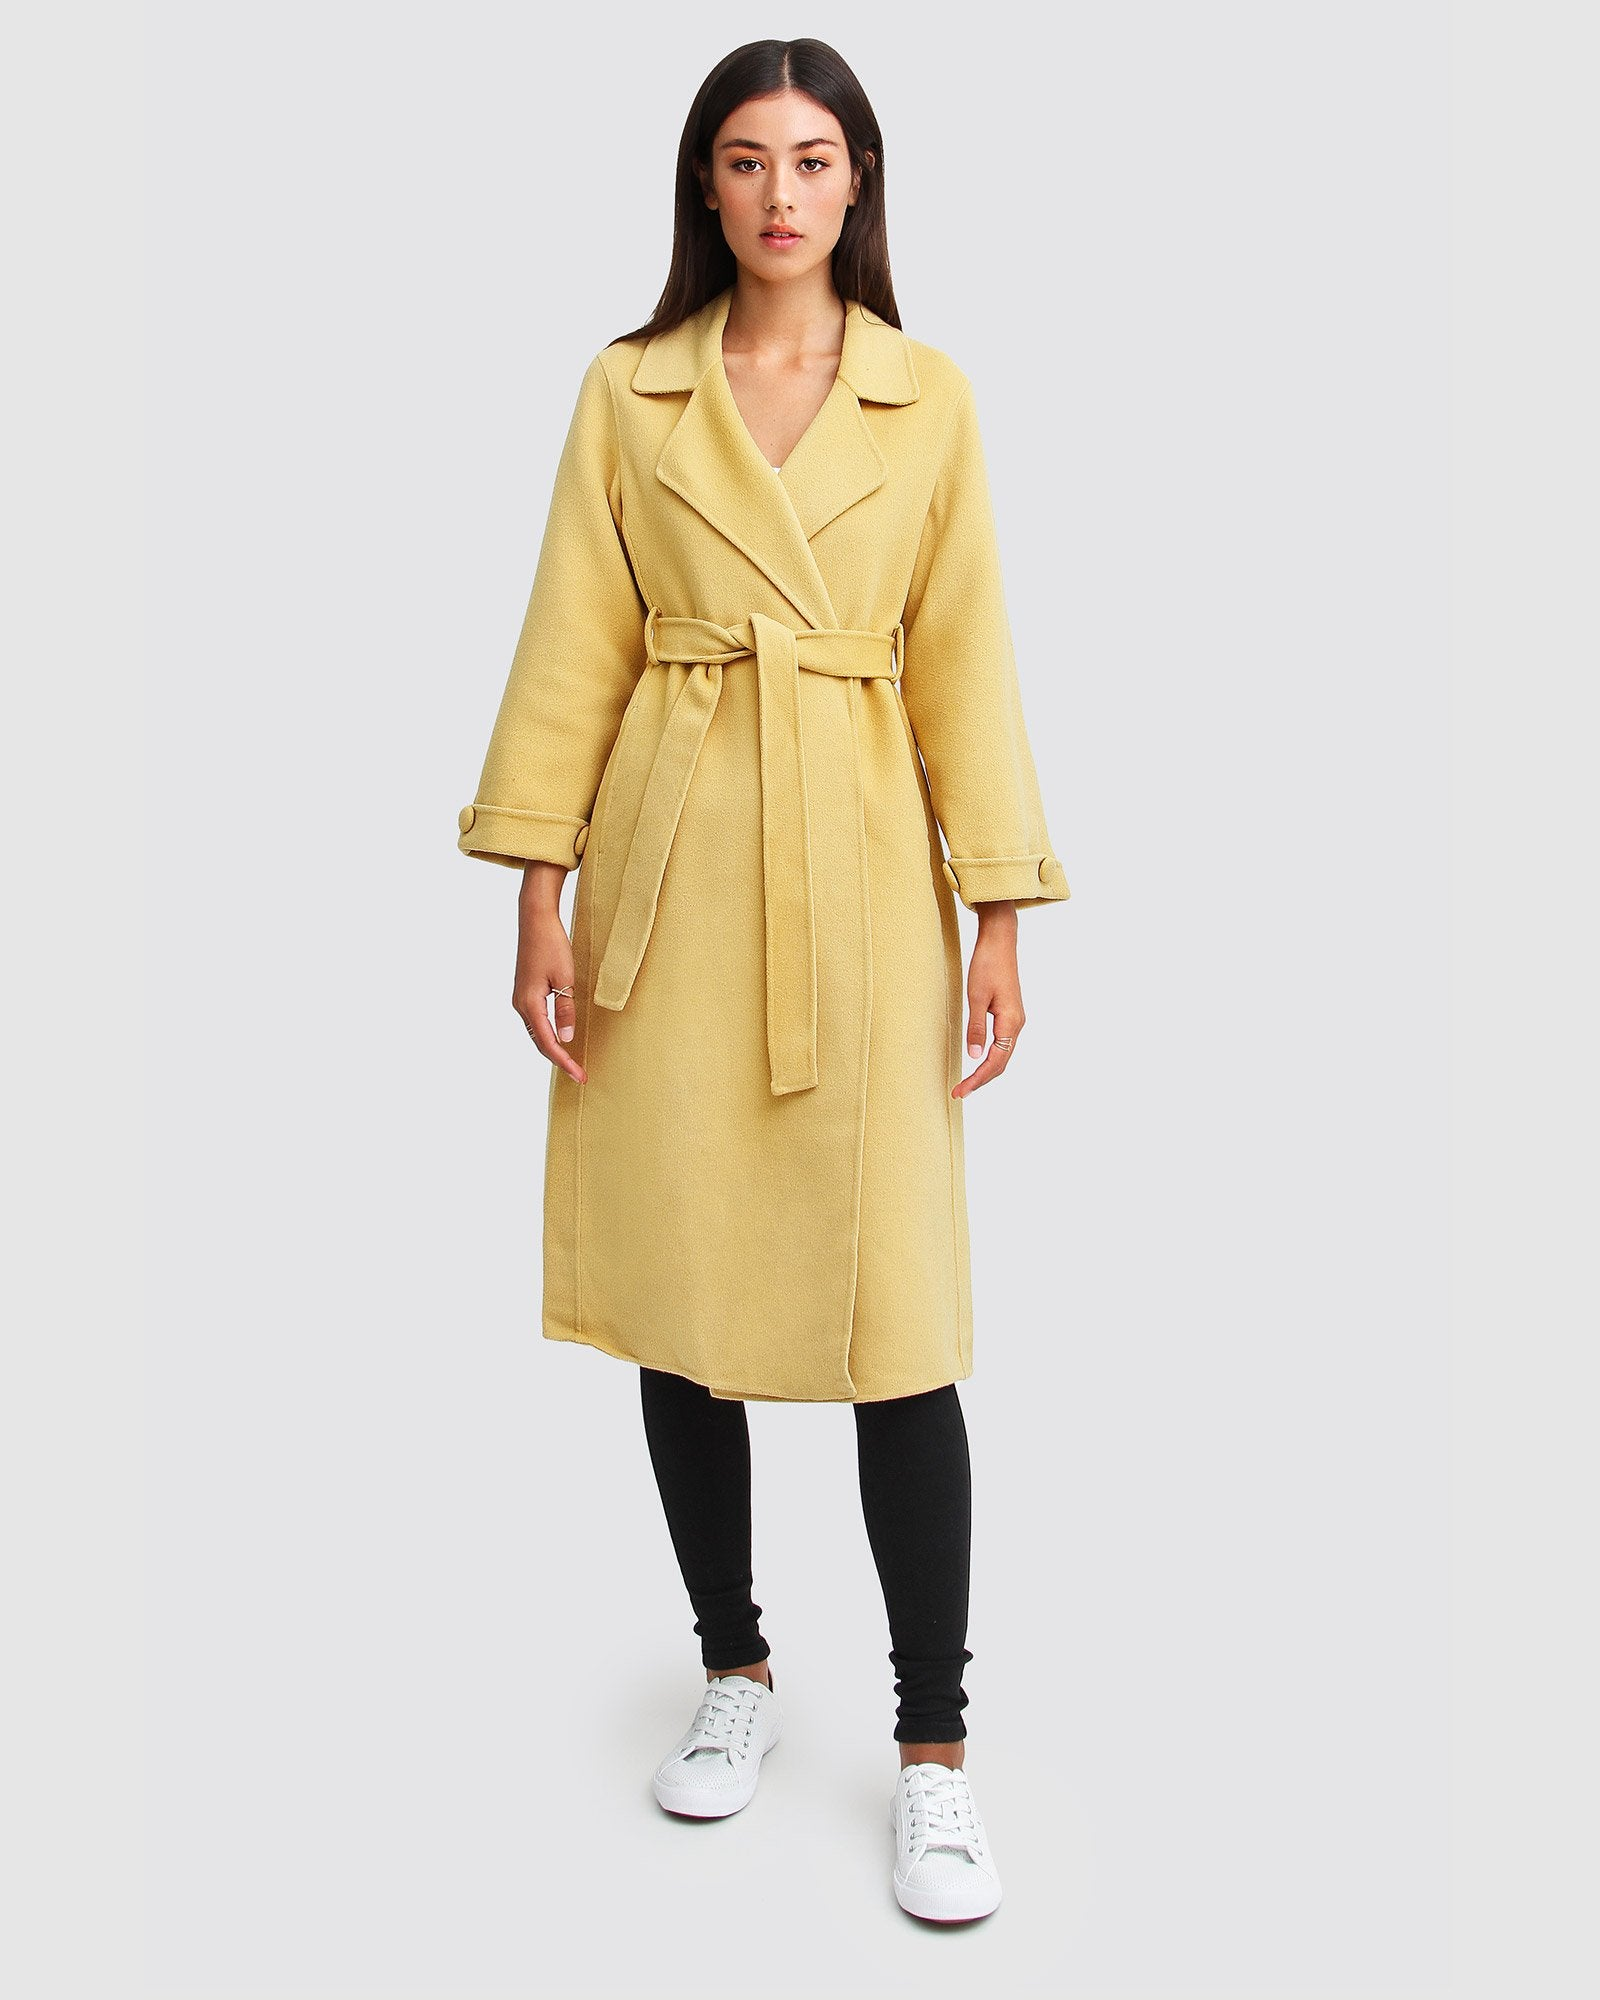 stay-wild-maize-belted-wool-coat-front.jpg